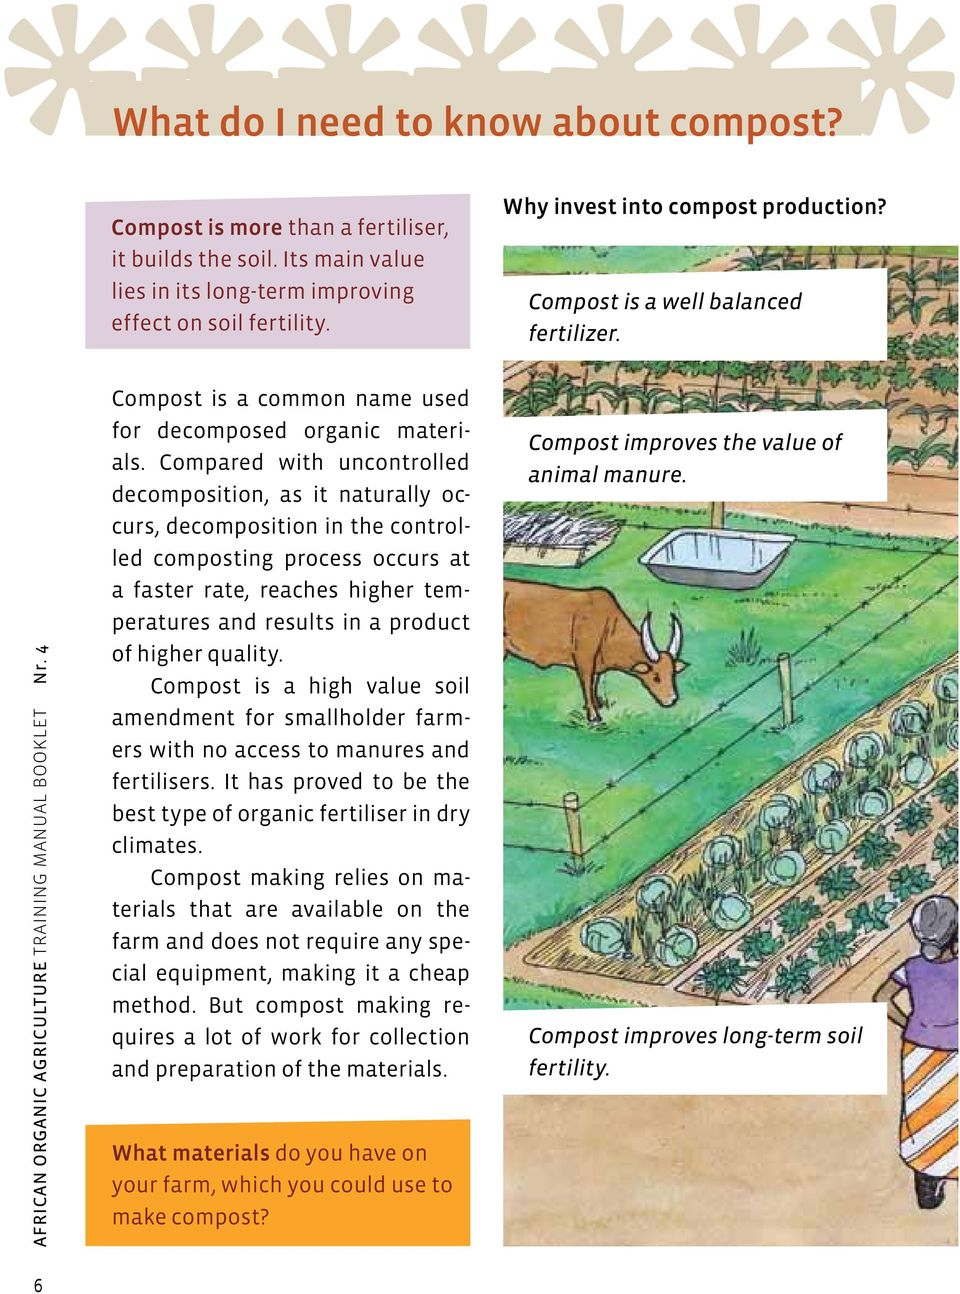 Compared with uncontrolled decomposition, as it naturally occurs, decomposition in the controlled composting process occurs at a faster rate, reaches higher temperatures and results in a product of